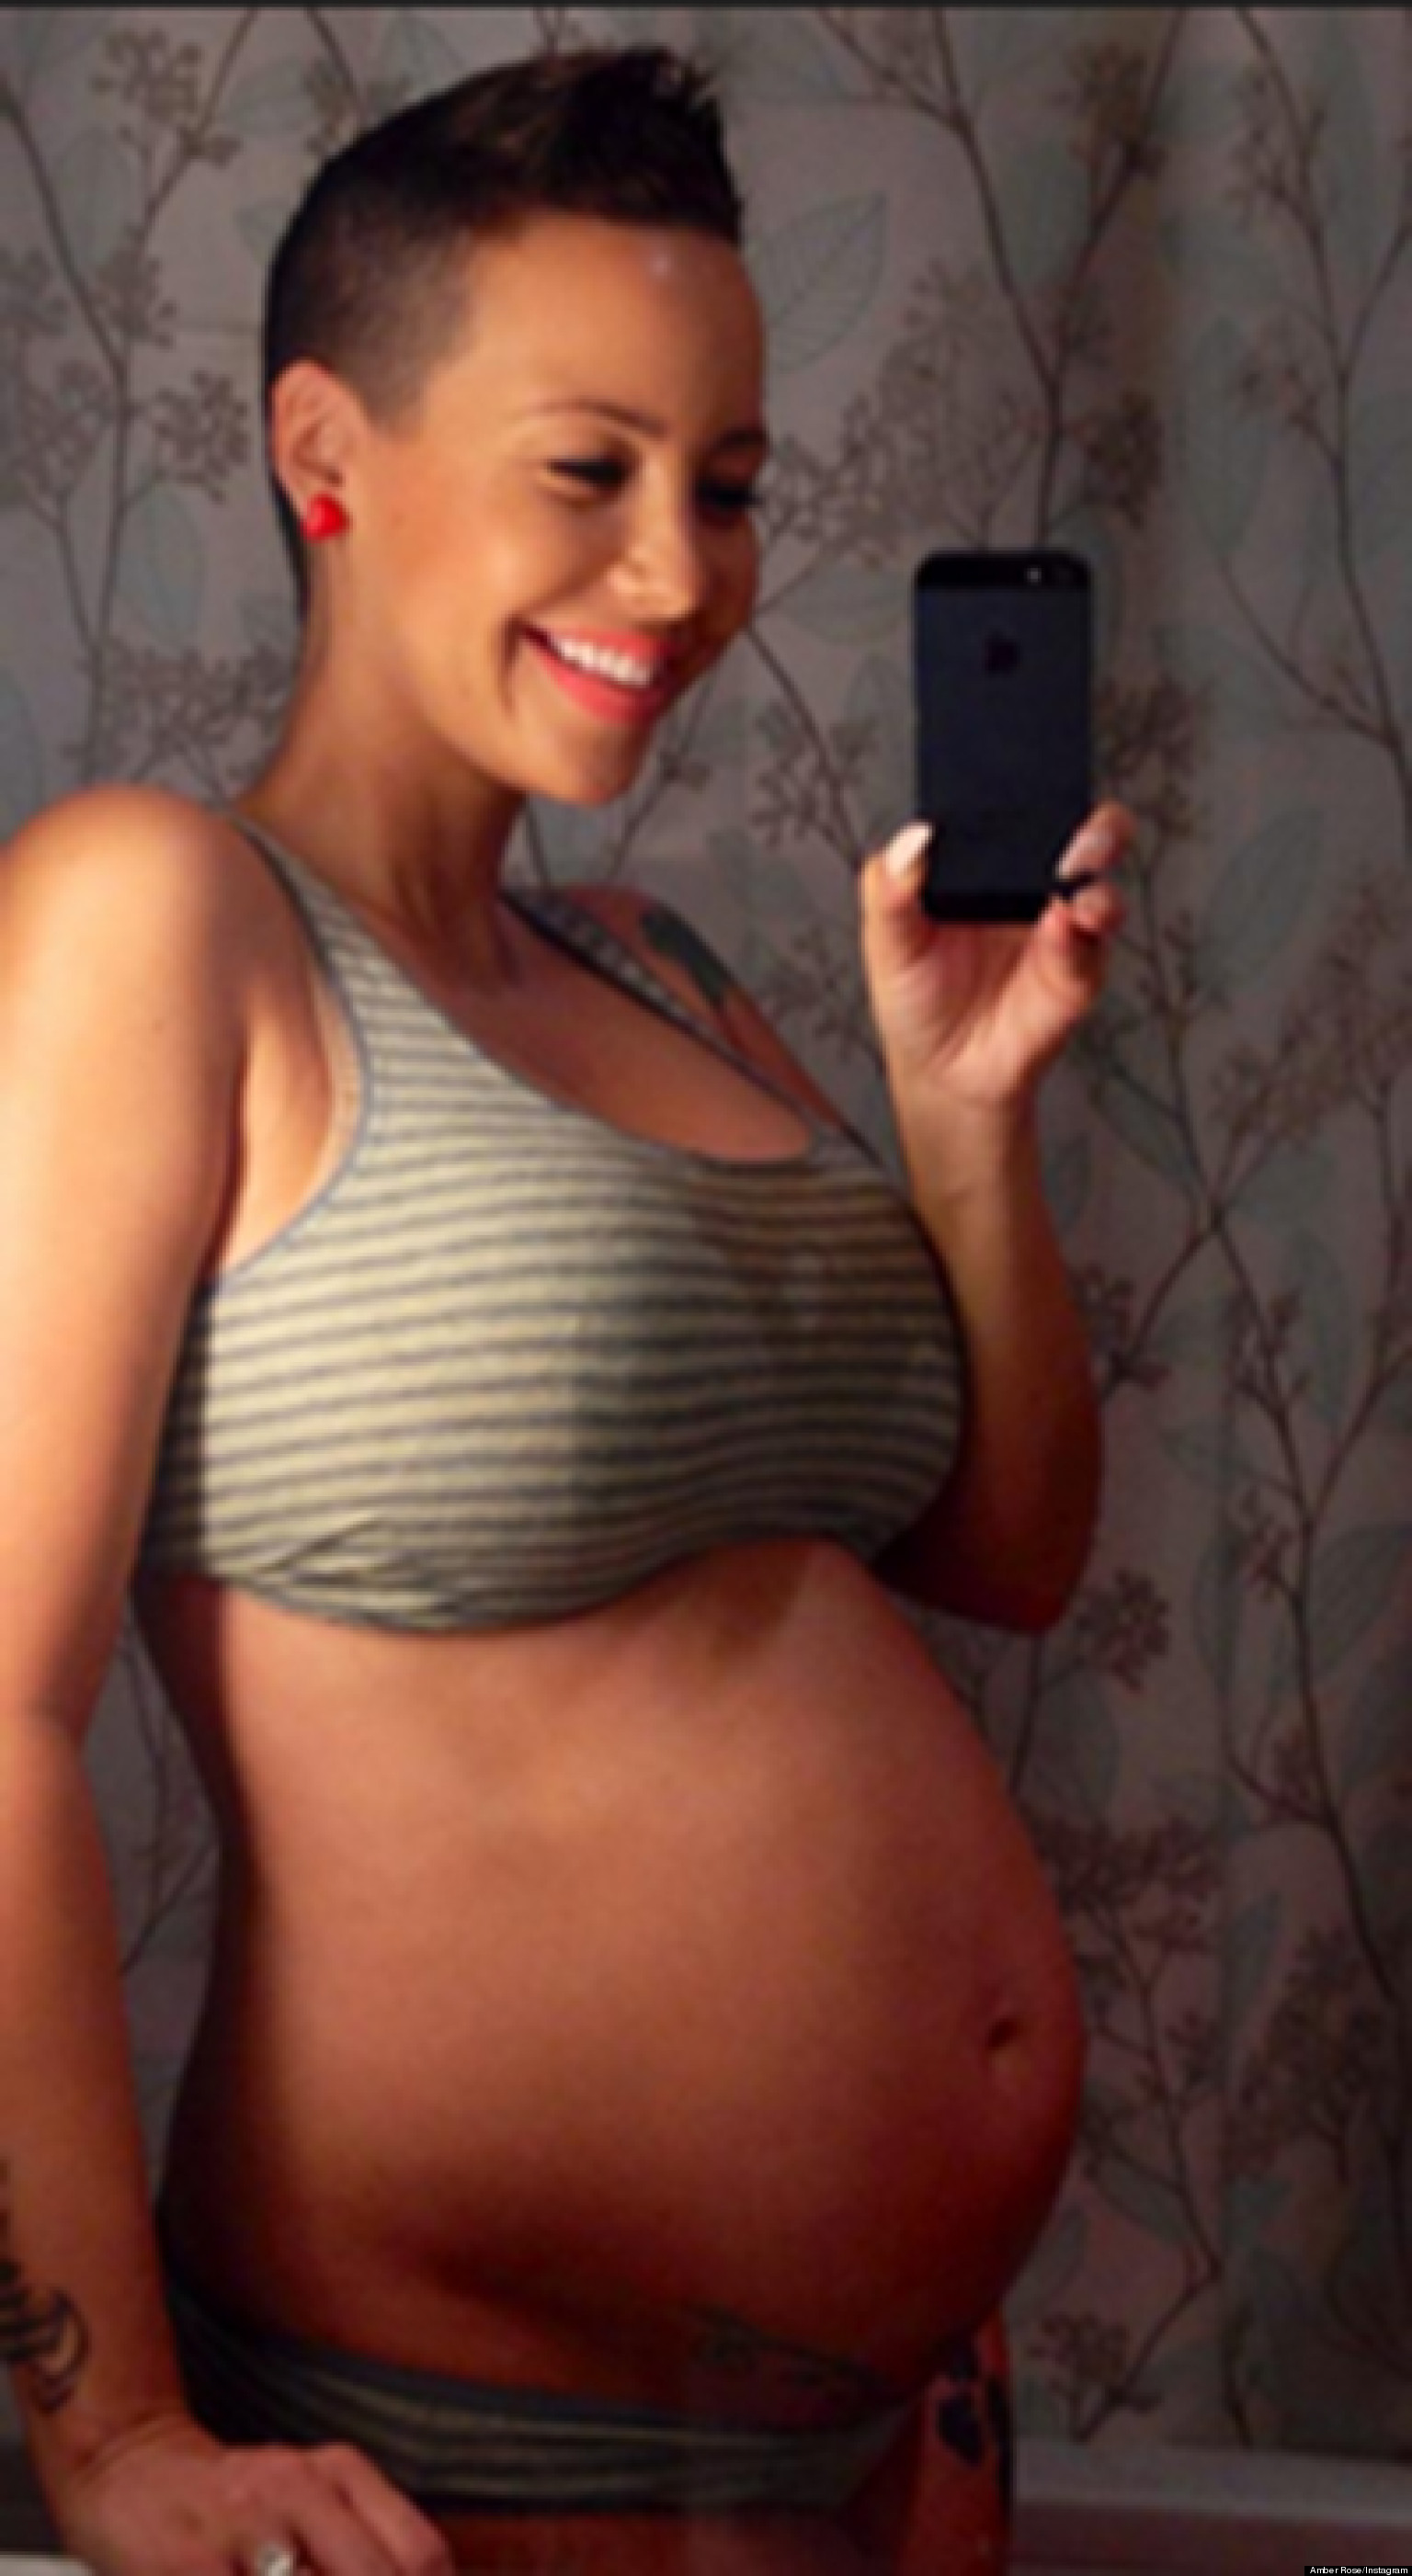 amber rose's nude baby bump: pregnant model posts picture of her